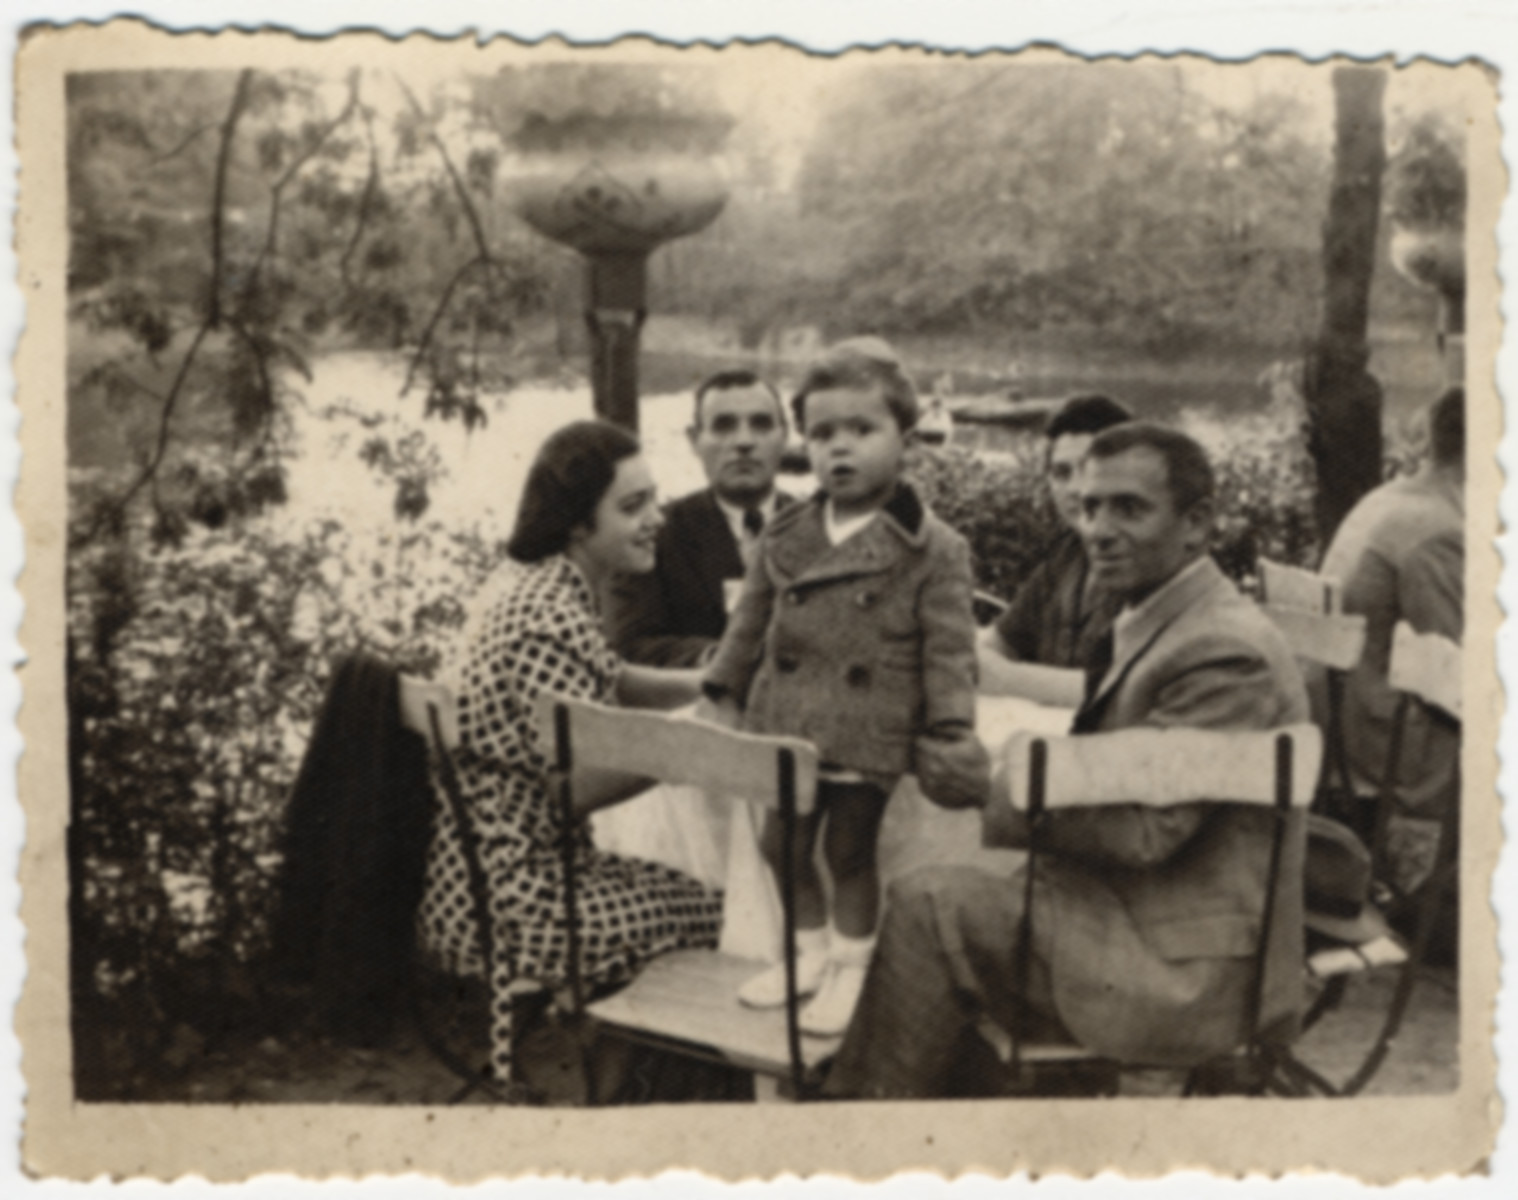 A Jewish family sits at an outdoor table near the Vitosha Mountains.  Pictured are Misha (front) with his parents, Gabriel and Victoria  Avramoff and their cousins (back).